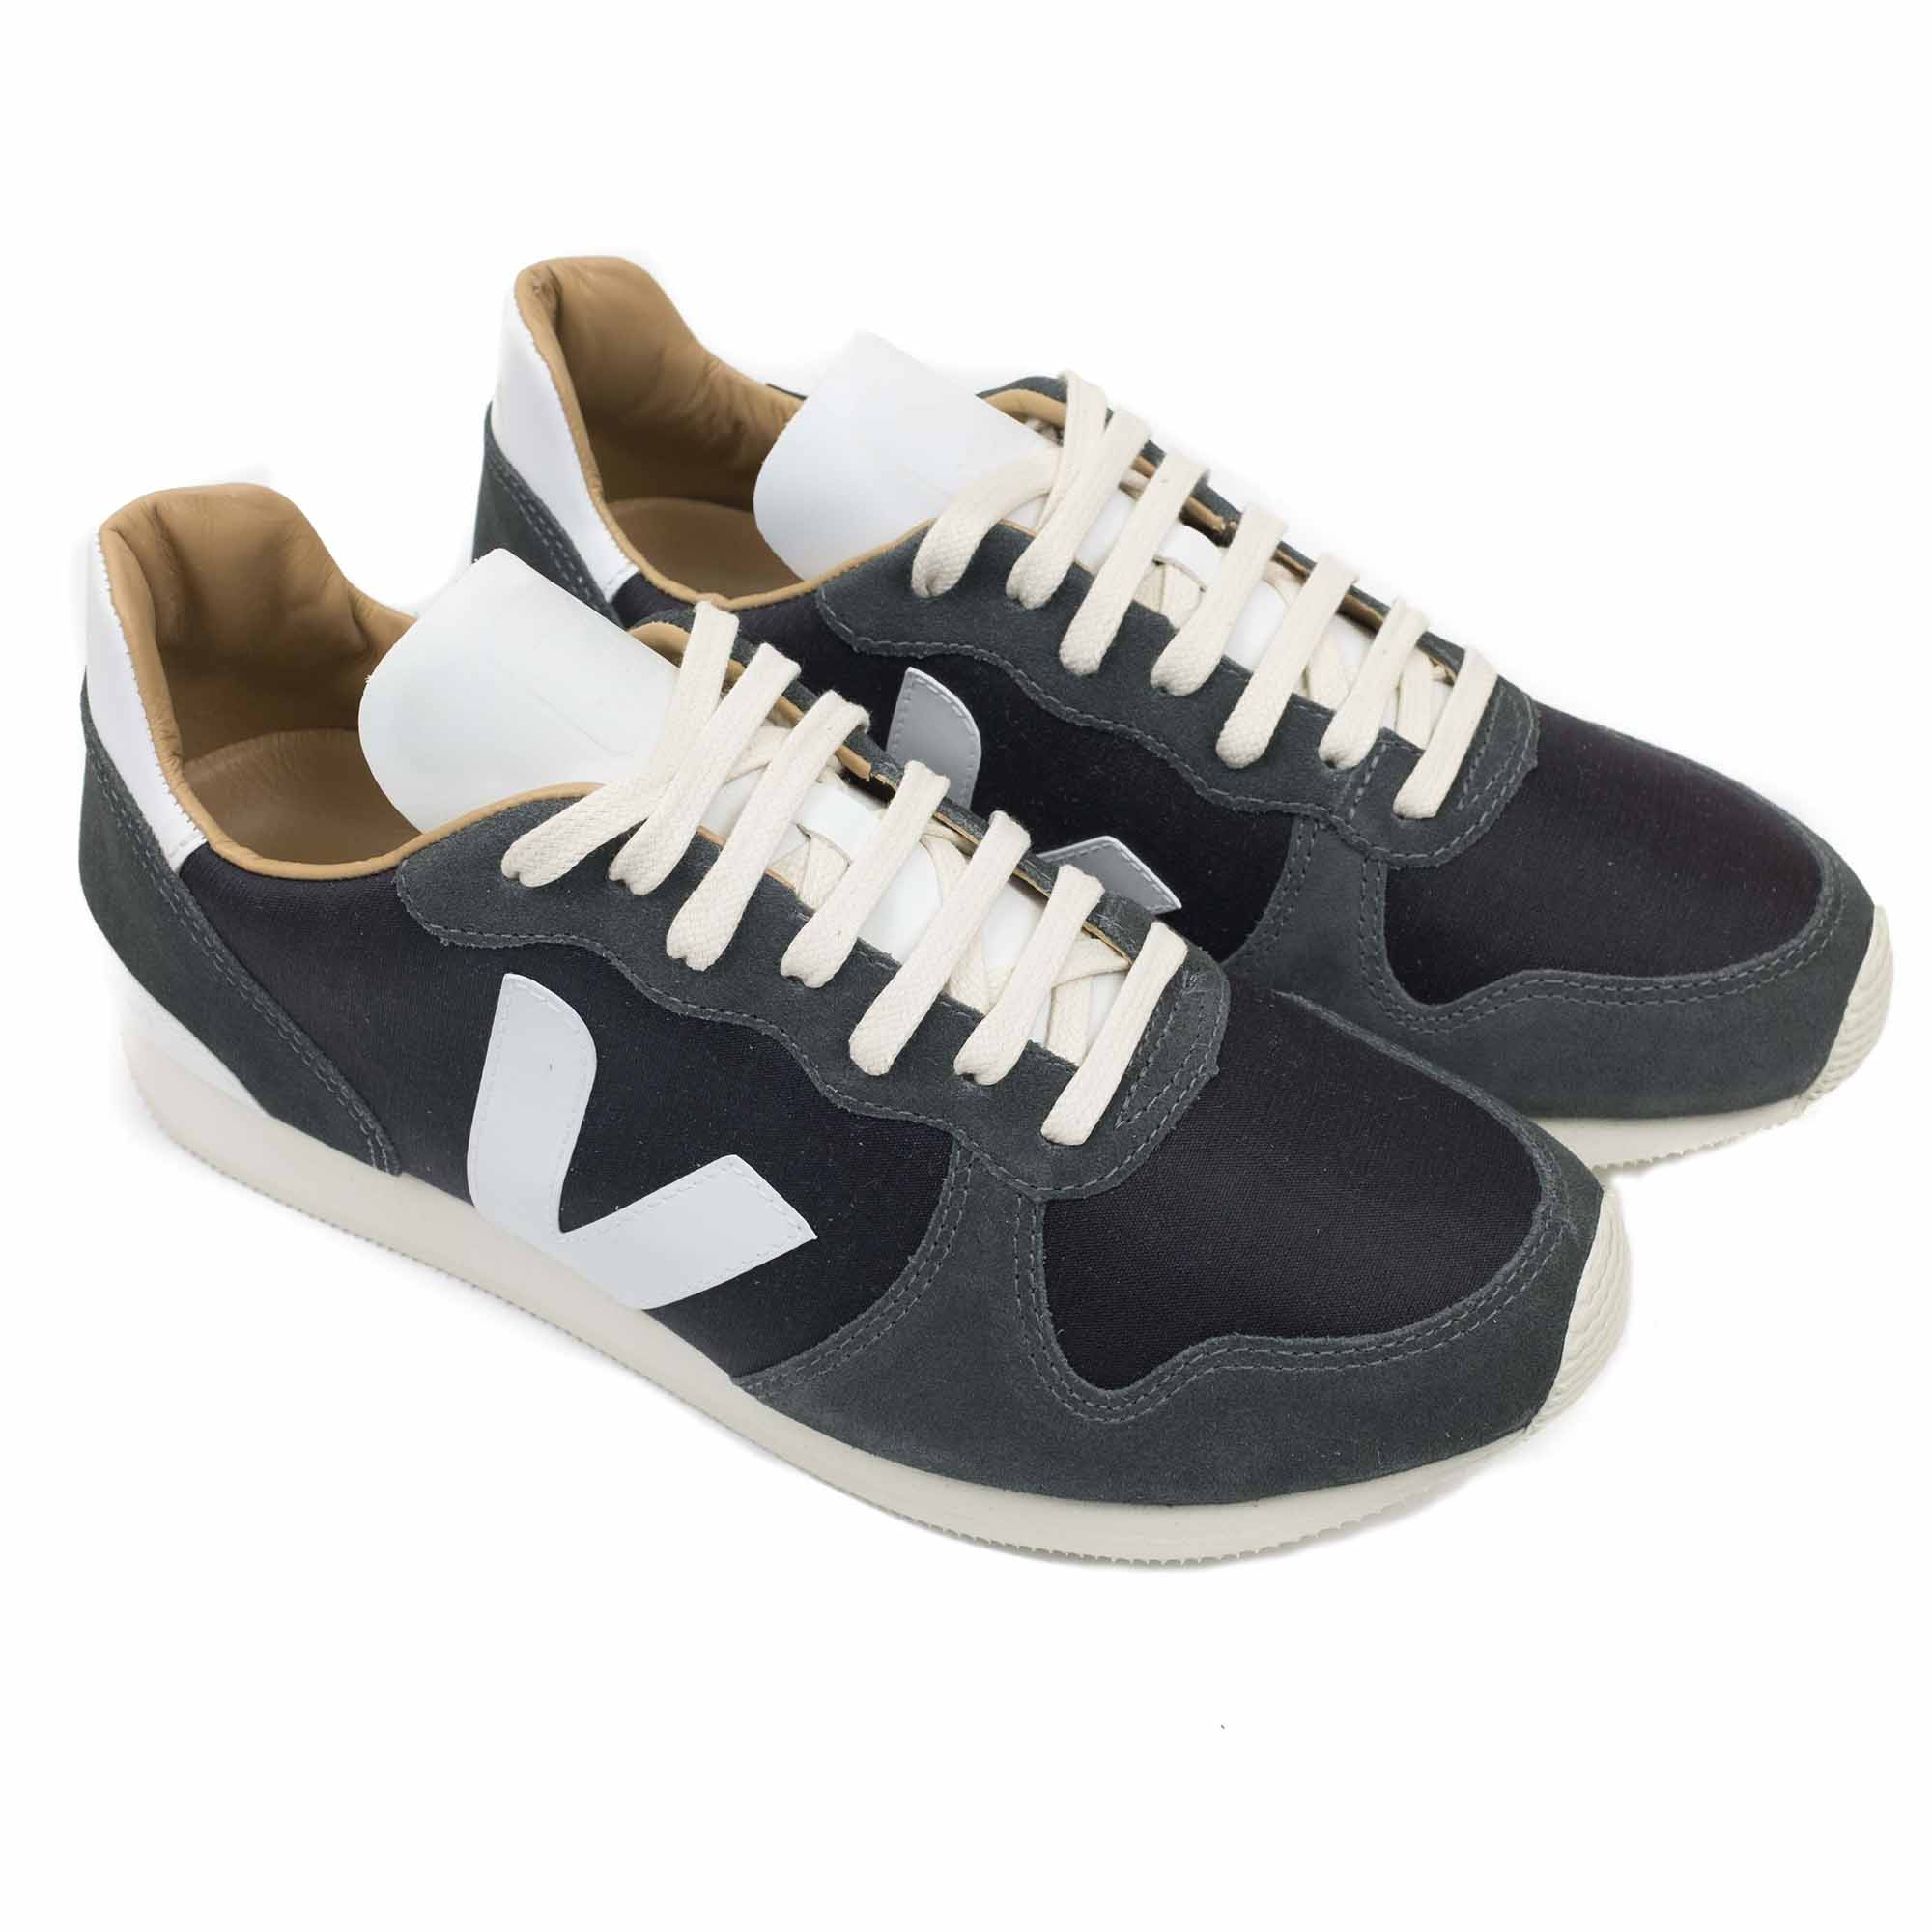 Veja Holiday Bastille Tafta - Black Grafite White